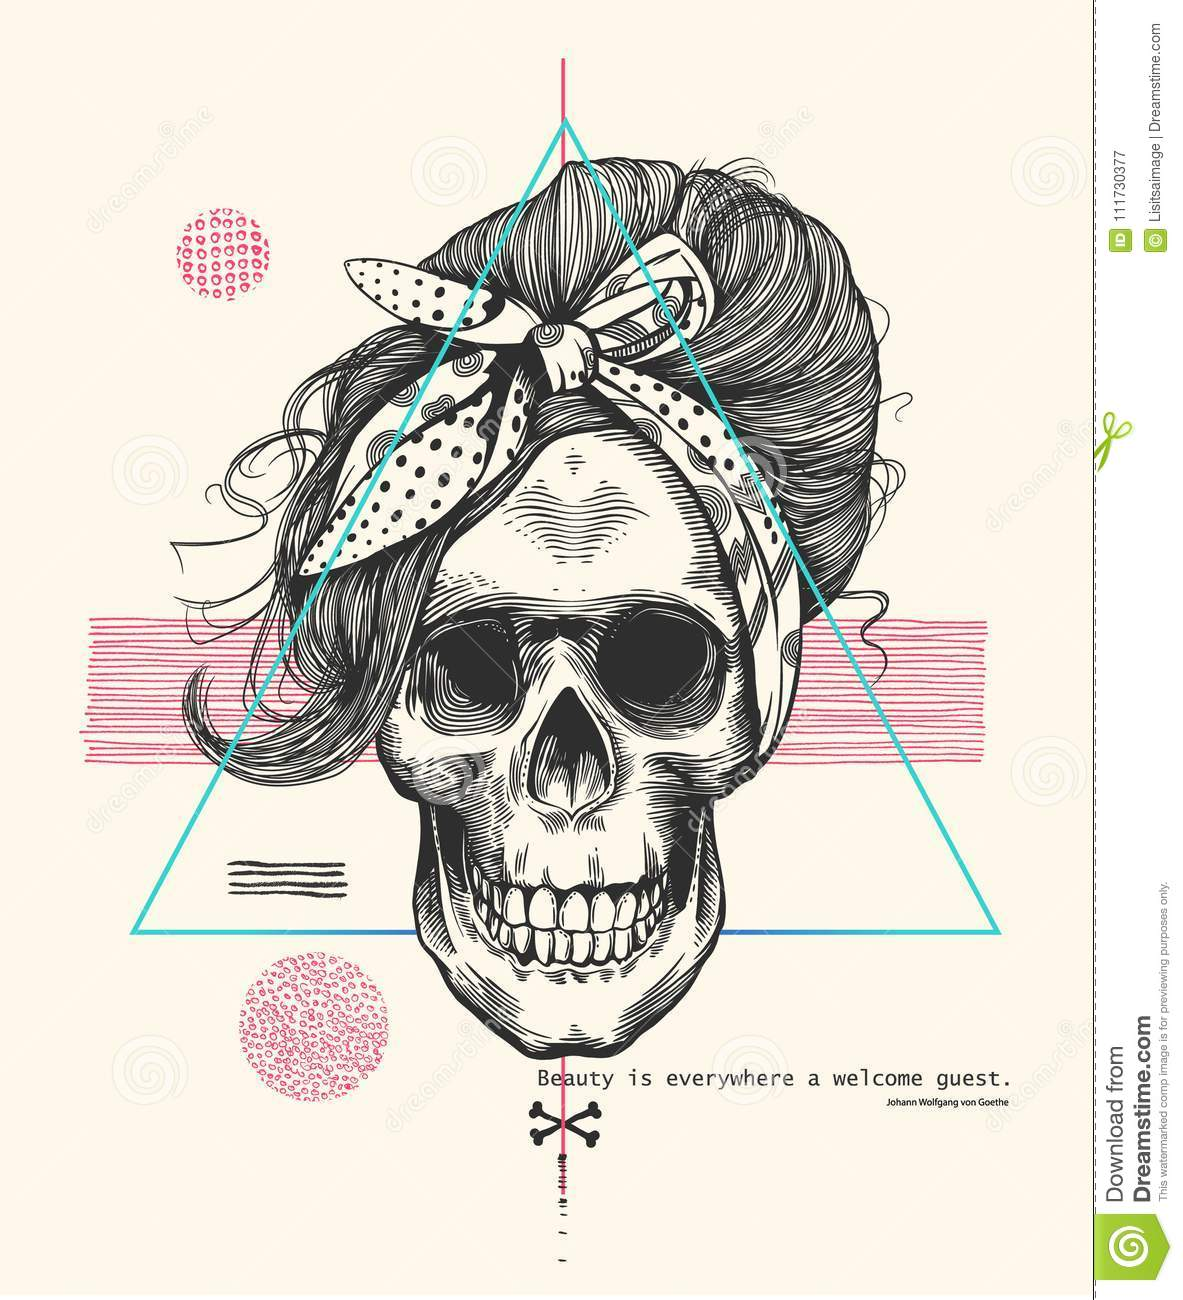 Women`s skeleton skull in woodcut style with fashionable hairstyle wearing cool scarf against hipster abstract